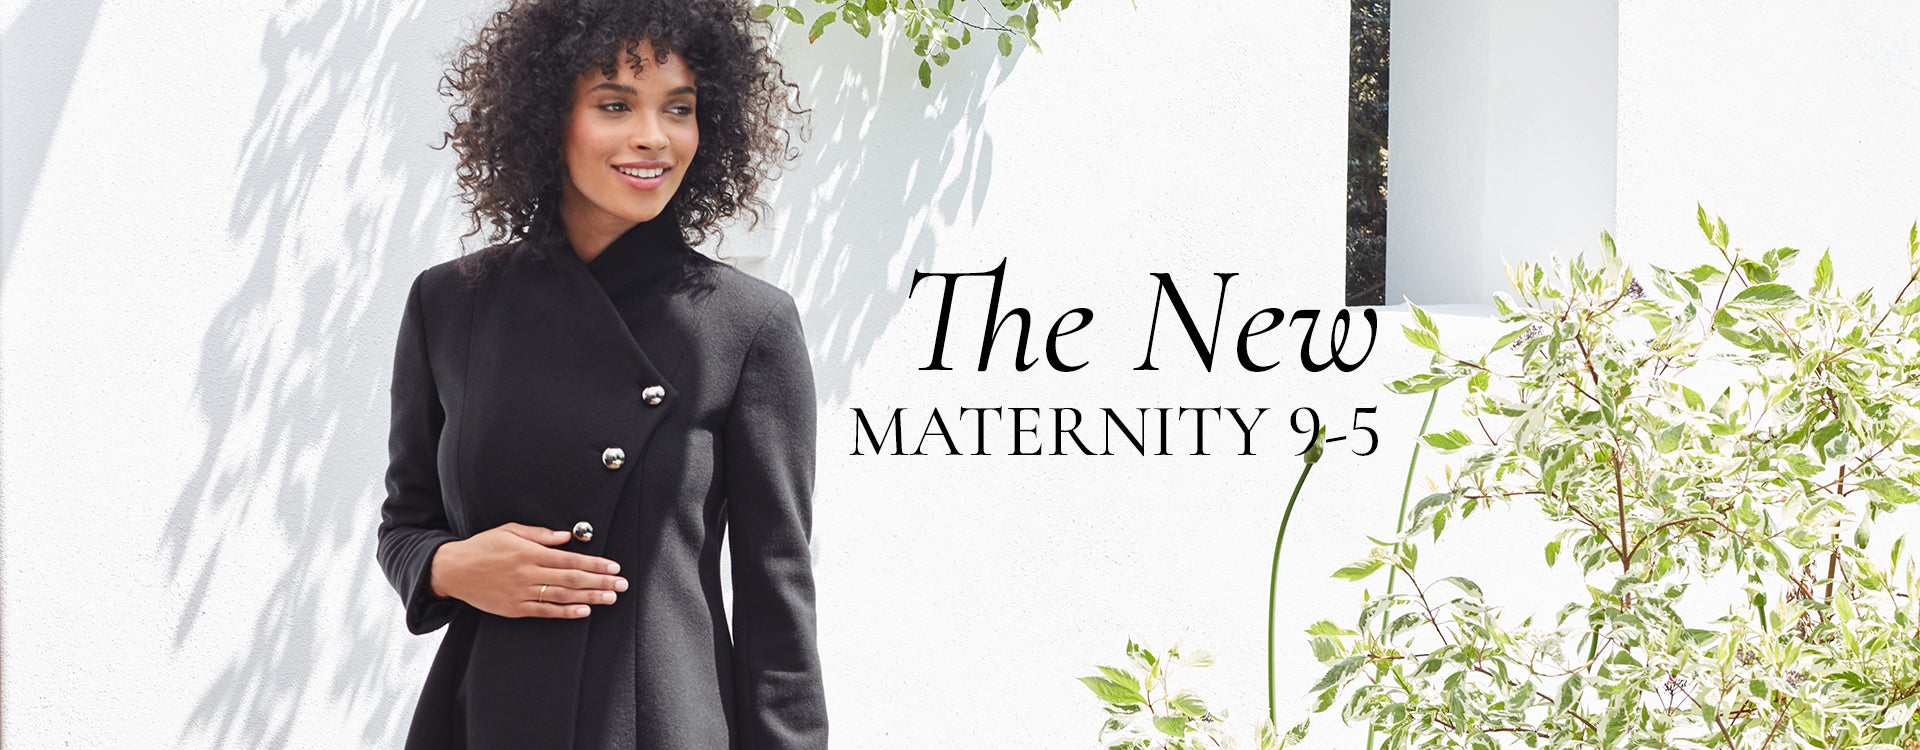 The New Maternity 9-5